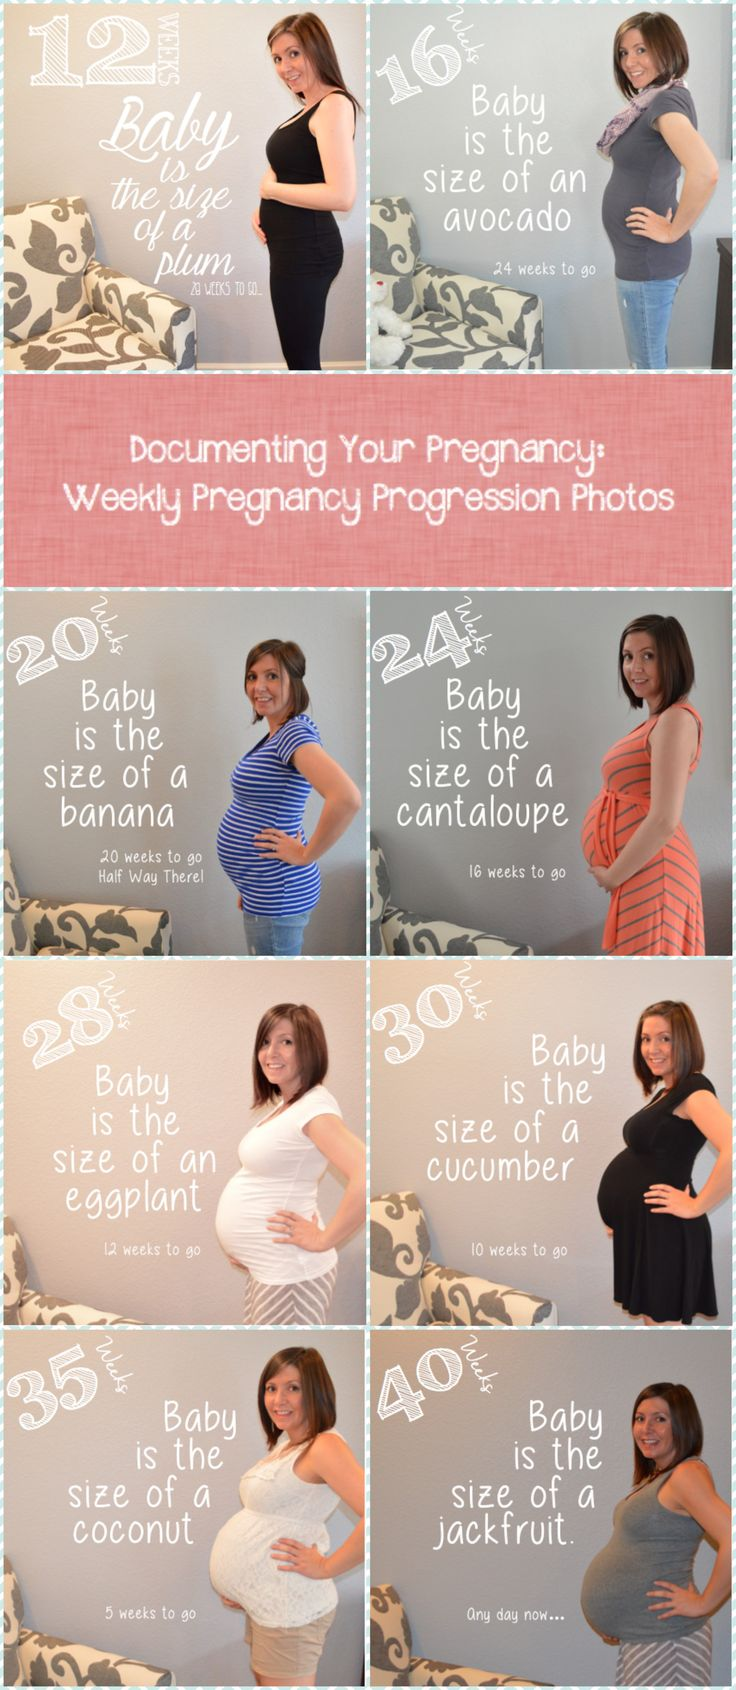 How to document your pregnancy! Weekly pregnancy progression photos and journal entries! <3